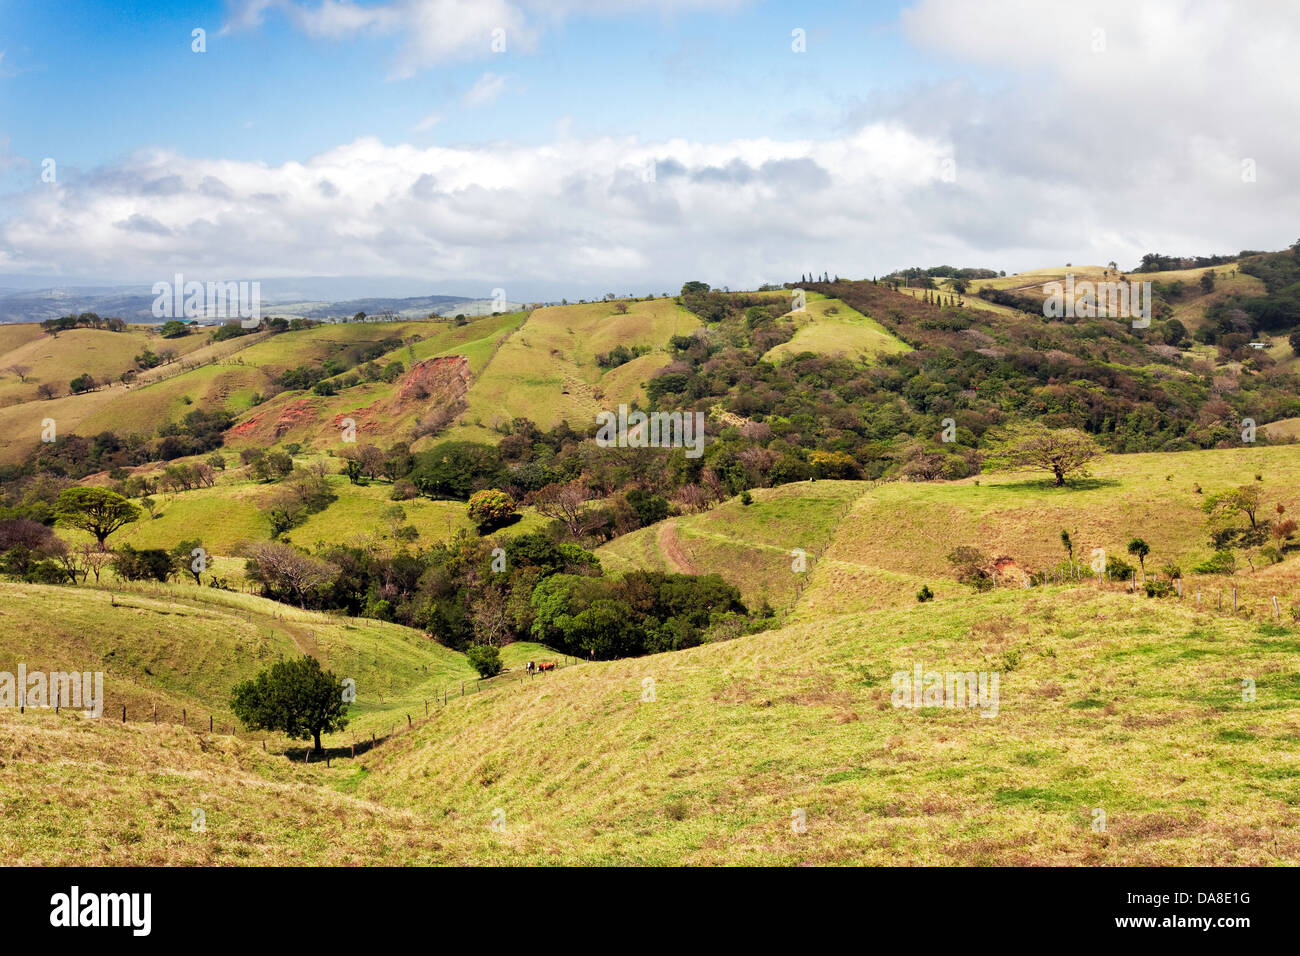 Scenic Costa Rican Countryside - Stock Image